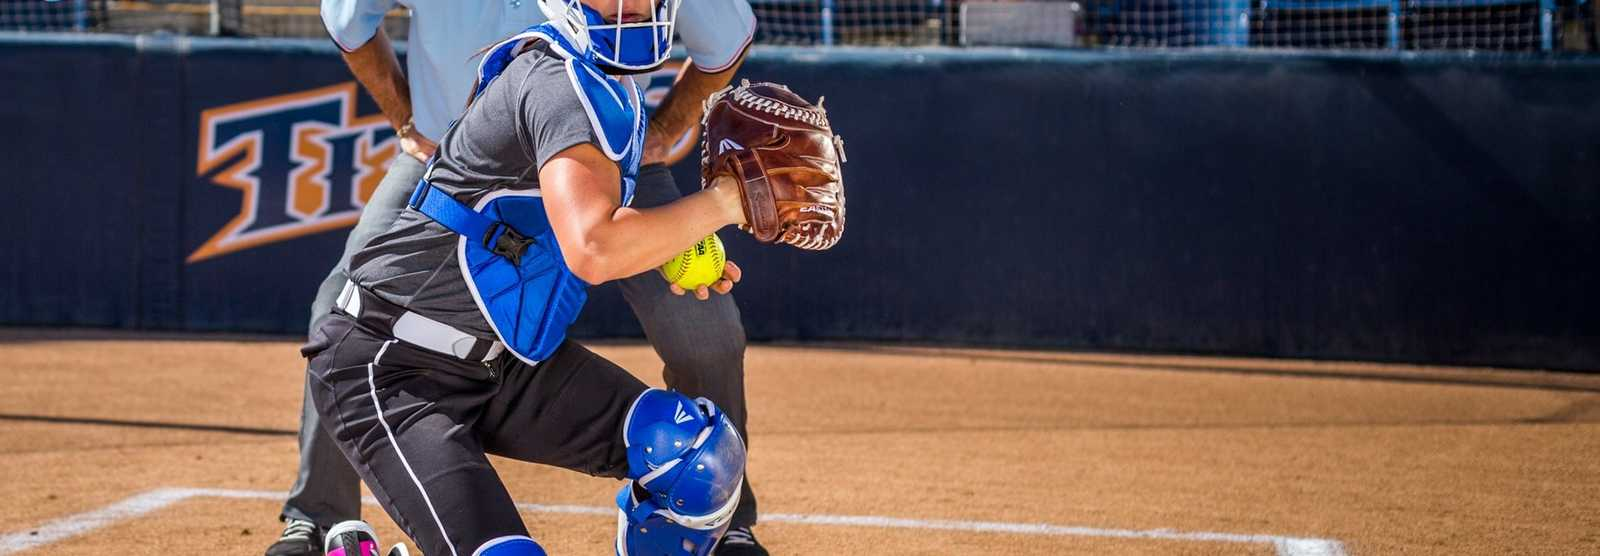 fastpitch-softball-catchers-accessories